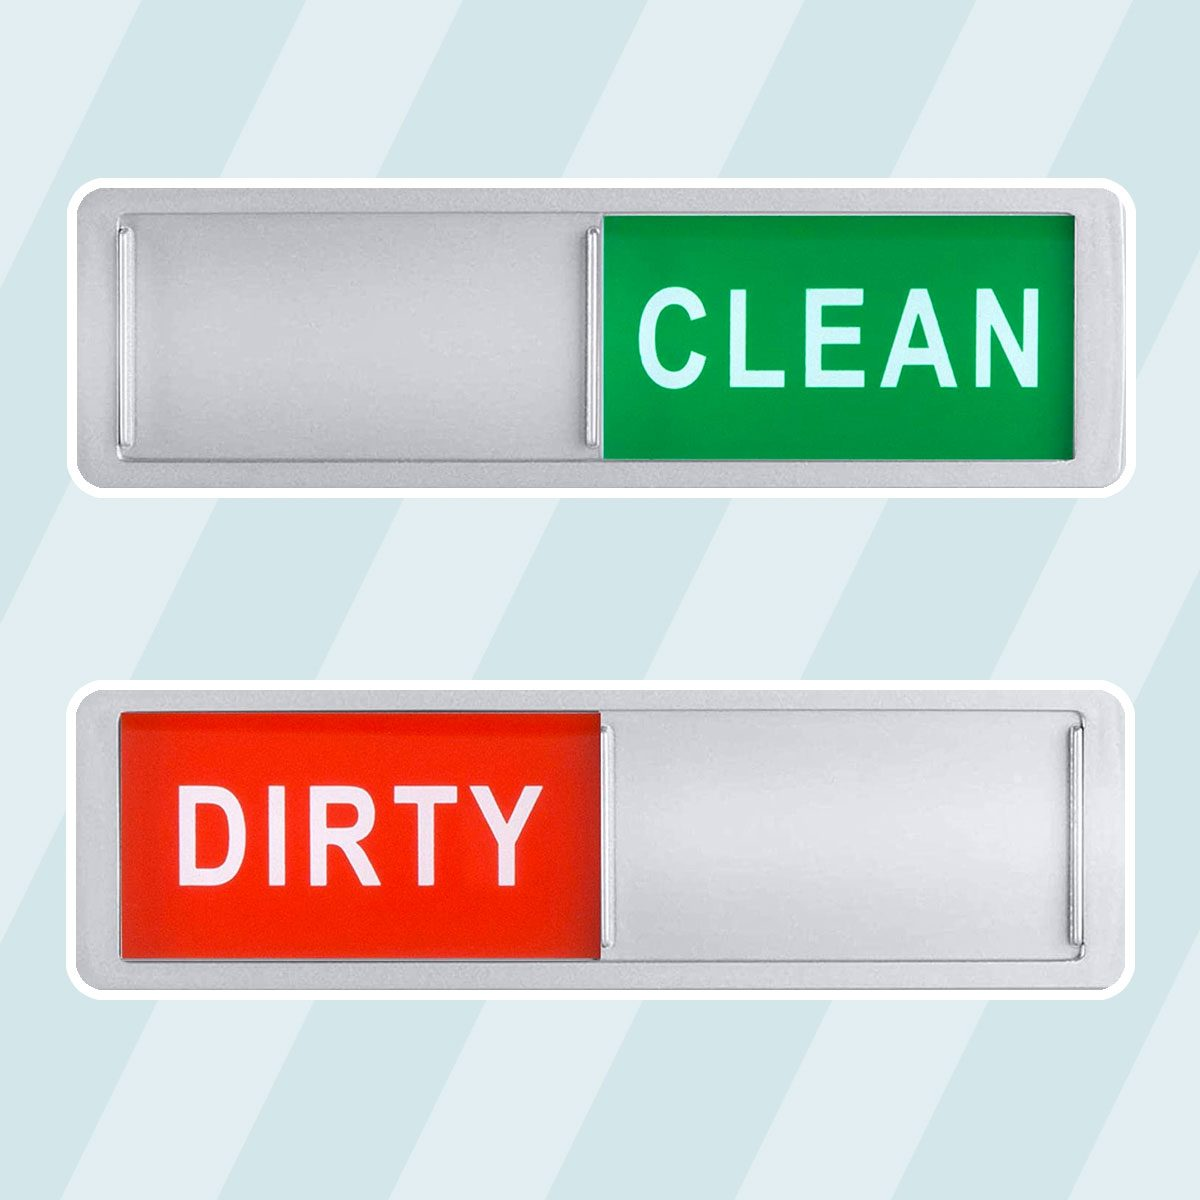 Clean Dirty Dishwasher Magnet - Non-Scratch Magnetic Silver Signage Indicator for Kitchen Dishes with Clear